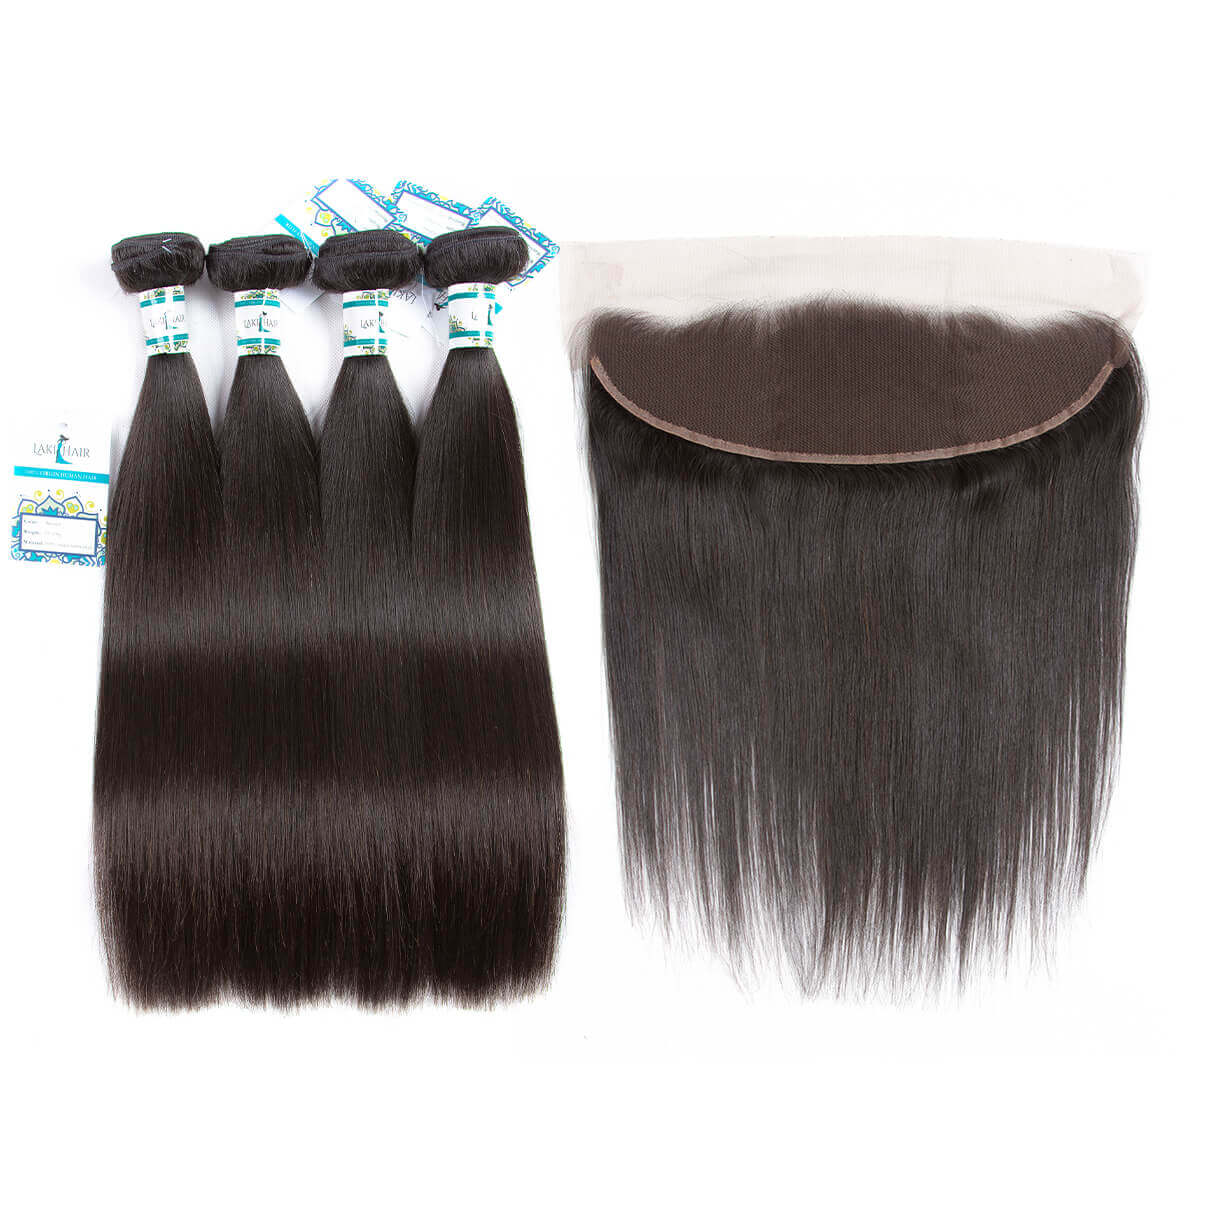 Lakihair 8A Virgin Human Hair Brazilian Straight Hair 4 Bundles With Lace Frontal Closure 13x4 Pre Plucked With Baby Hair